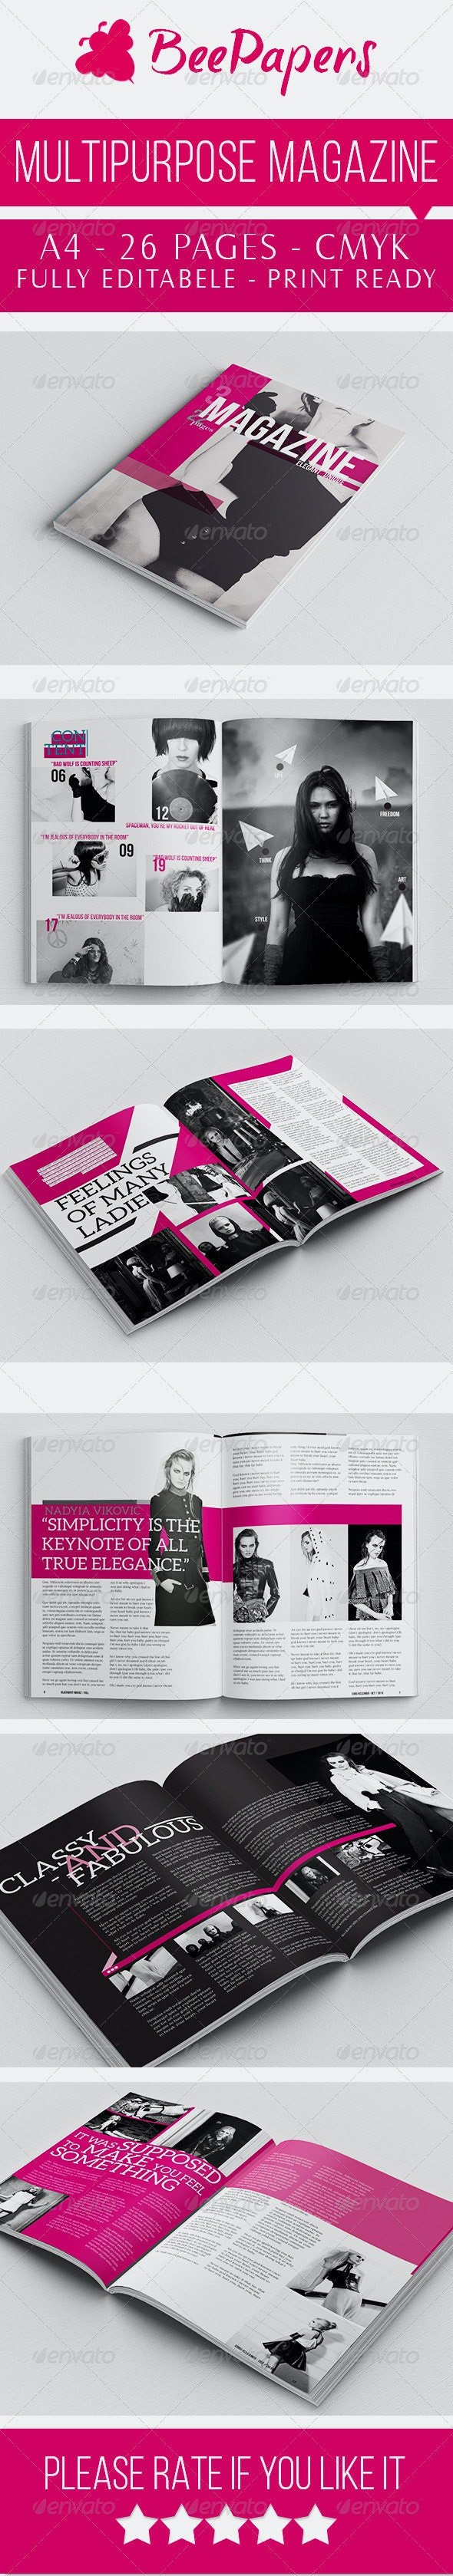 Unique Magazine Indesign - Magazines Print Templates